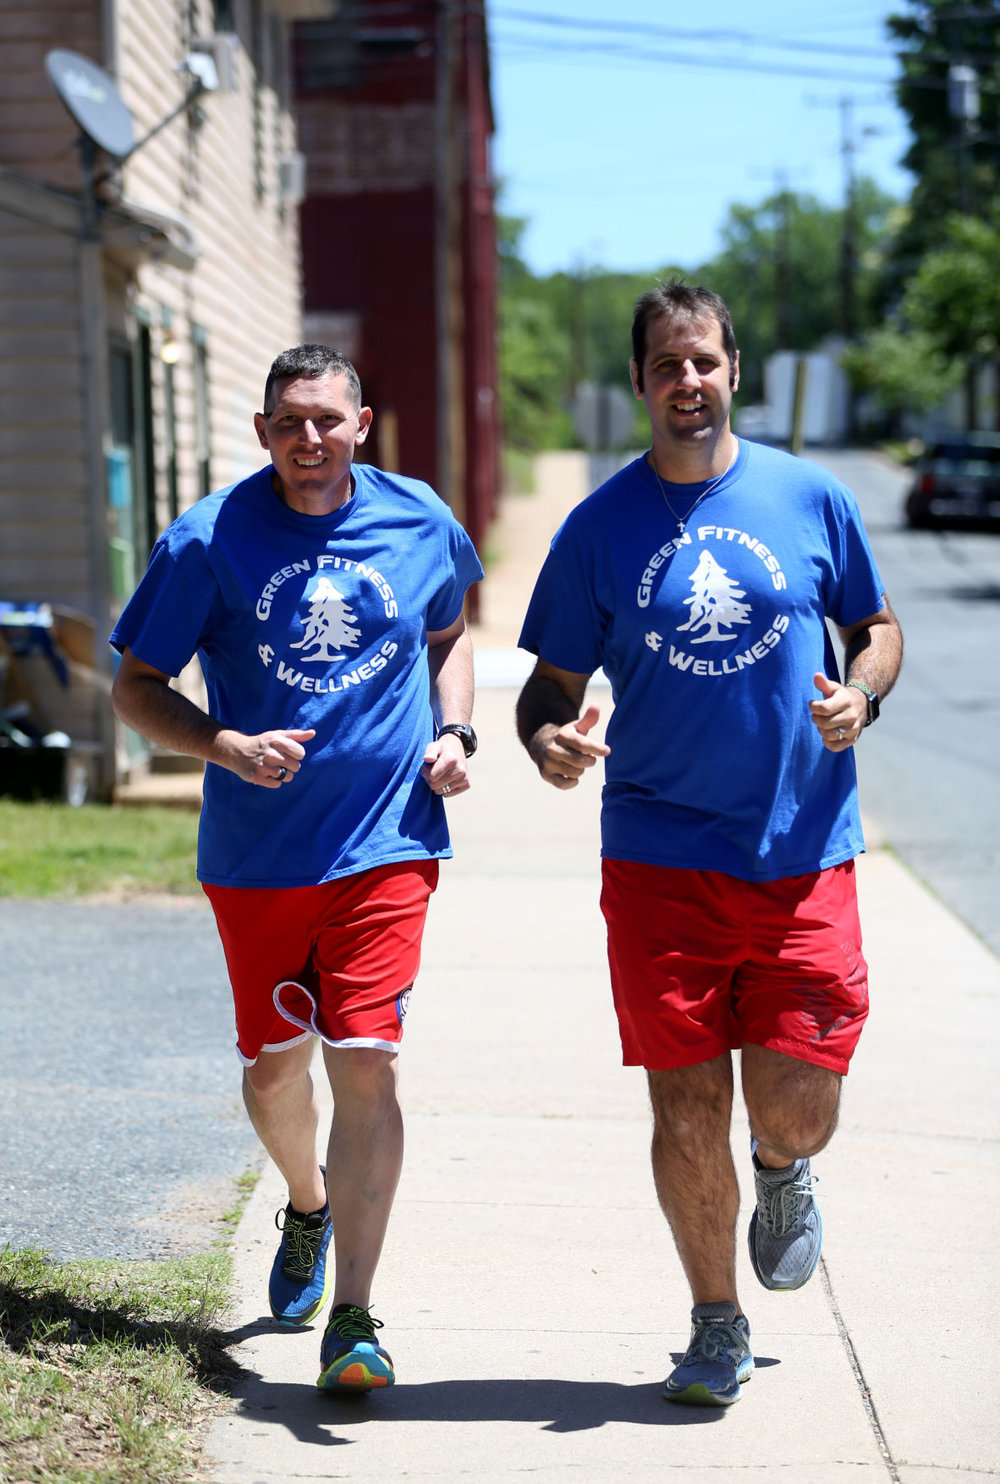 Lt Col David Graves and Garrett Green on a training run prior to the Semper 5 miler.